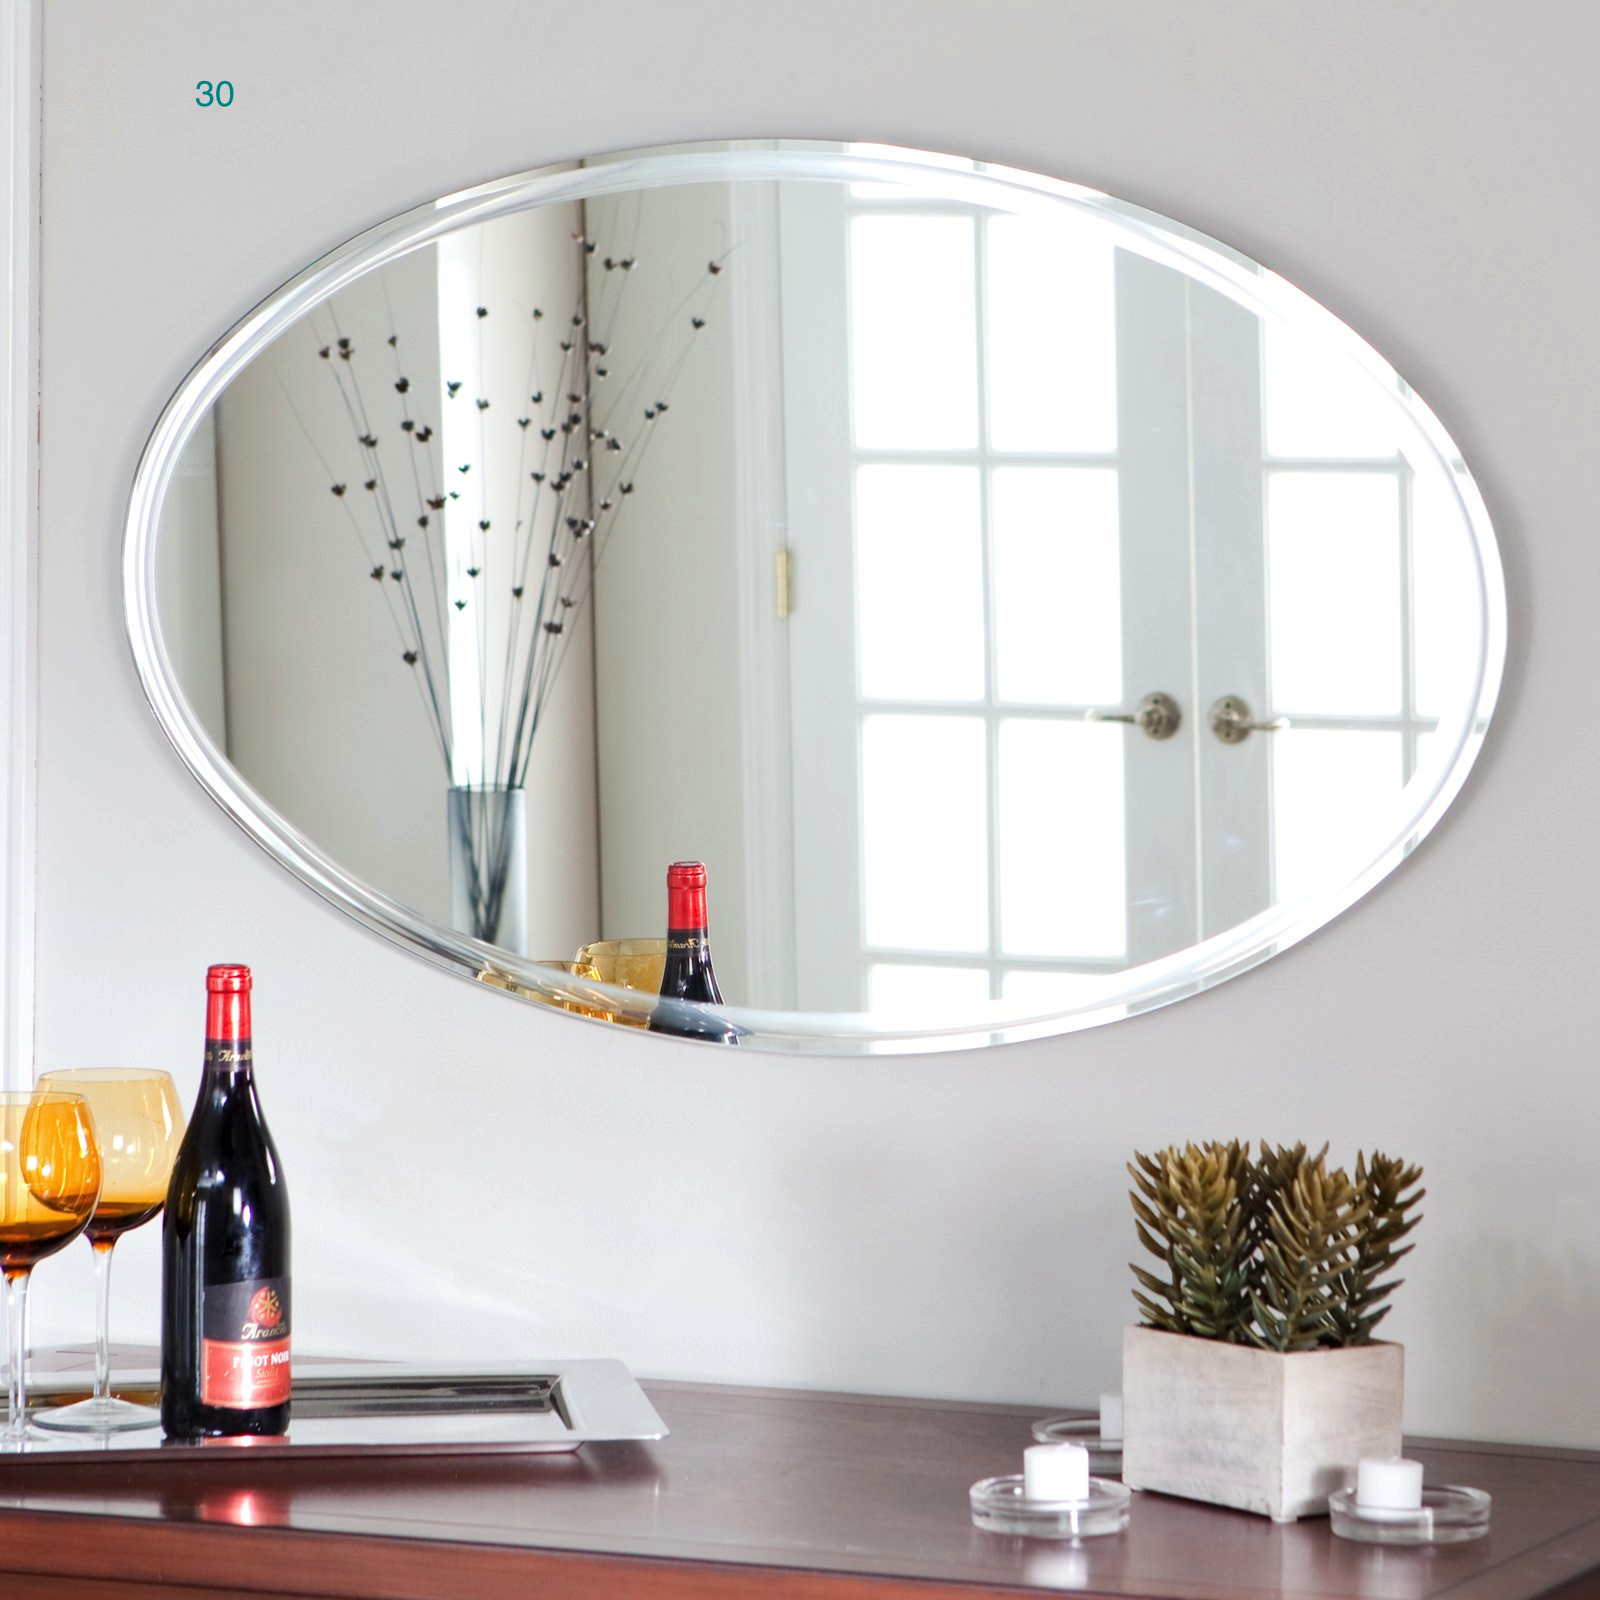 Bathroom Mirror Ideas Oval Shaped For The Vanity In Country Frames